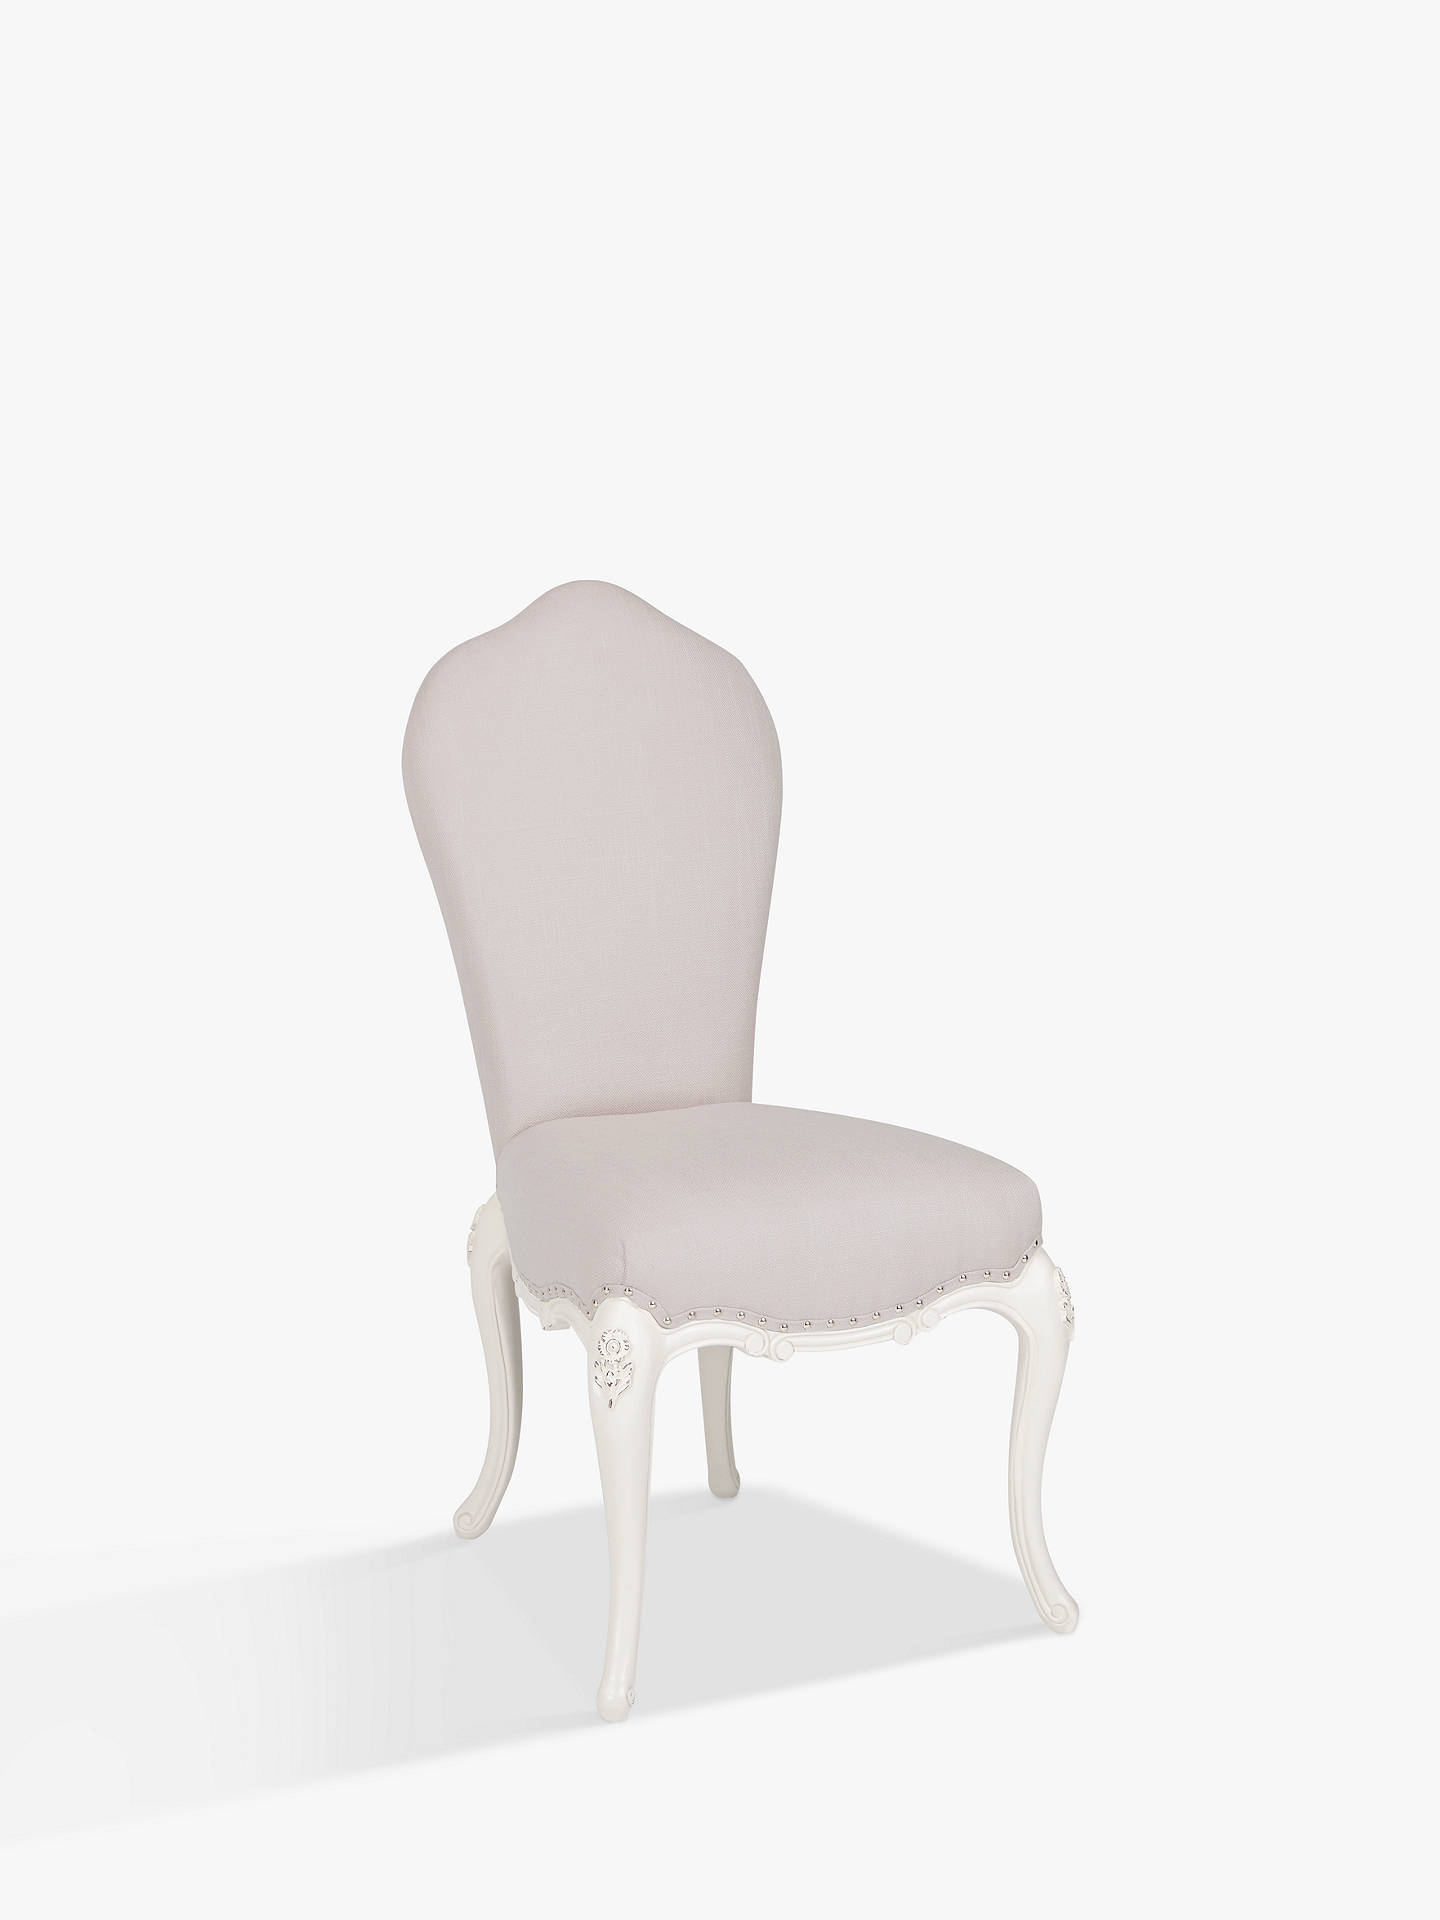 BuyJohn Lewis & Partners Rose Mist Dressing Table Chair Online at johnlewis.com